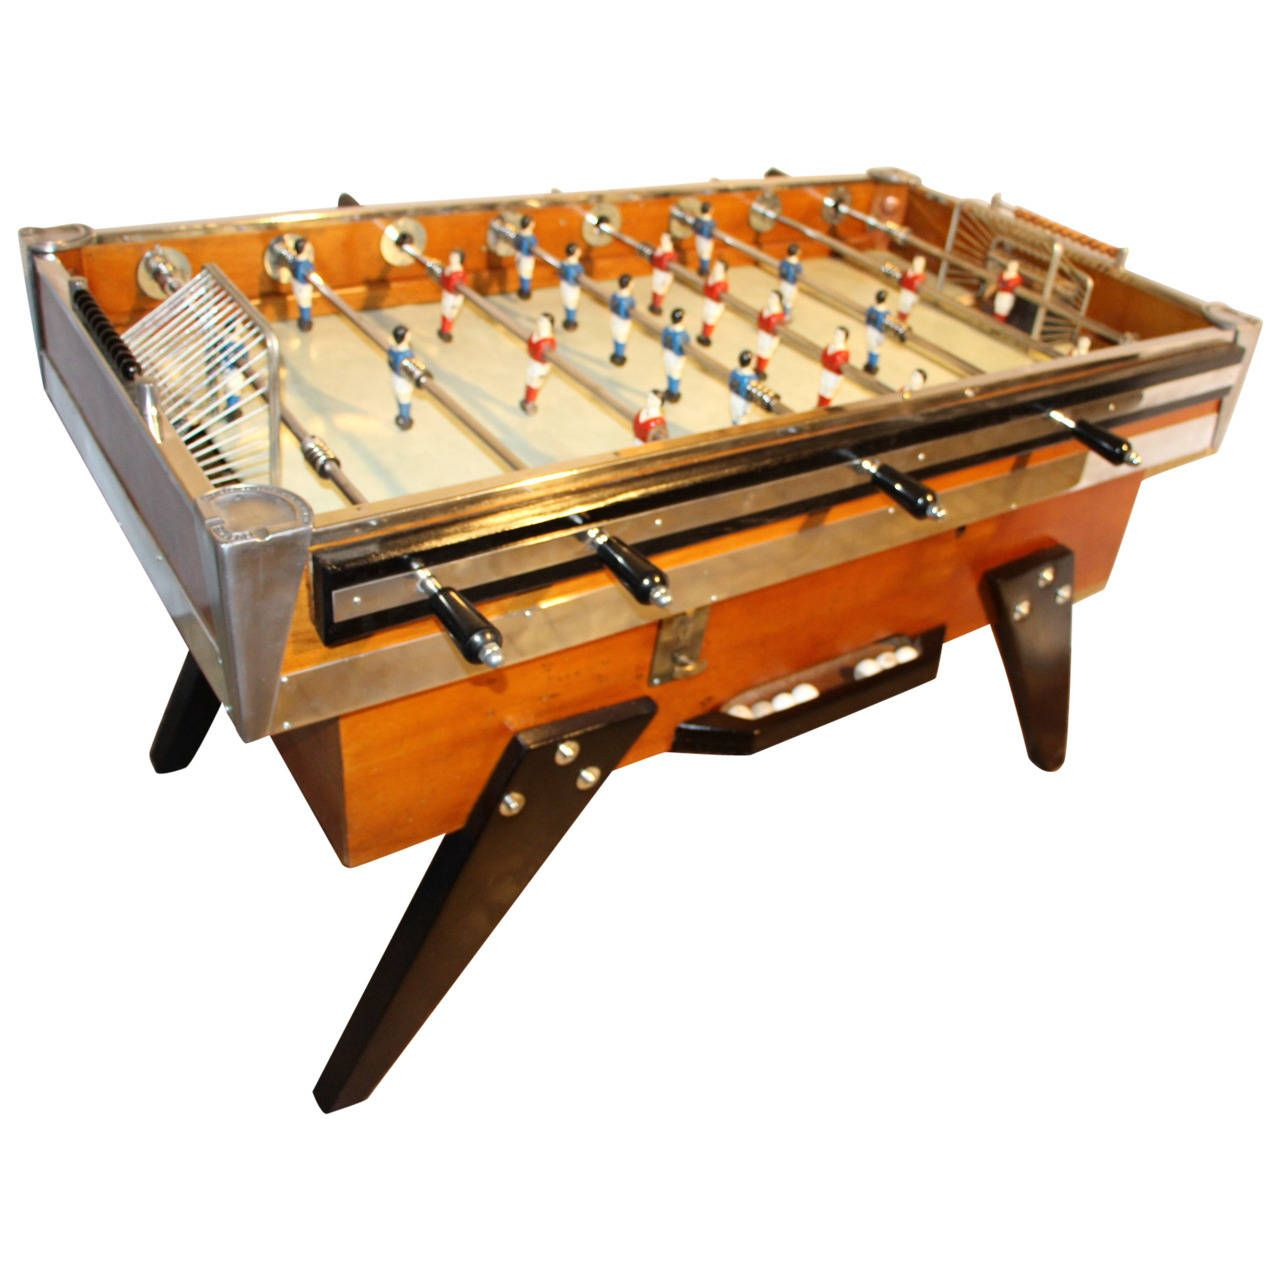 Beautiful French 1950s Cafe S Foosball Table Foosball Foosball Table Modern Game Tables